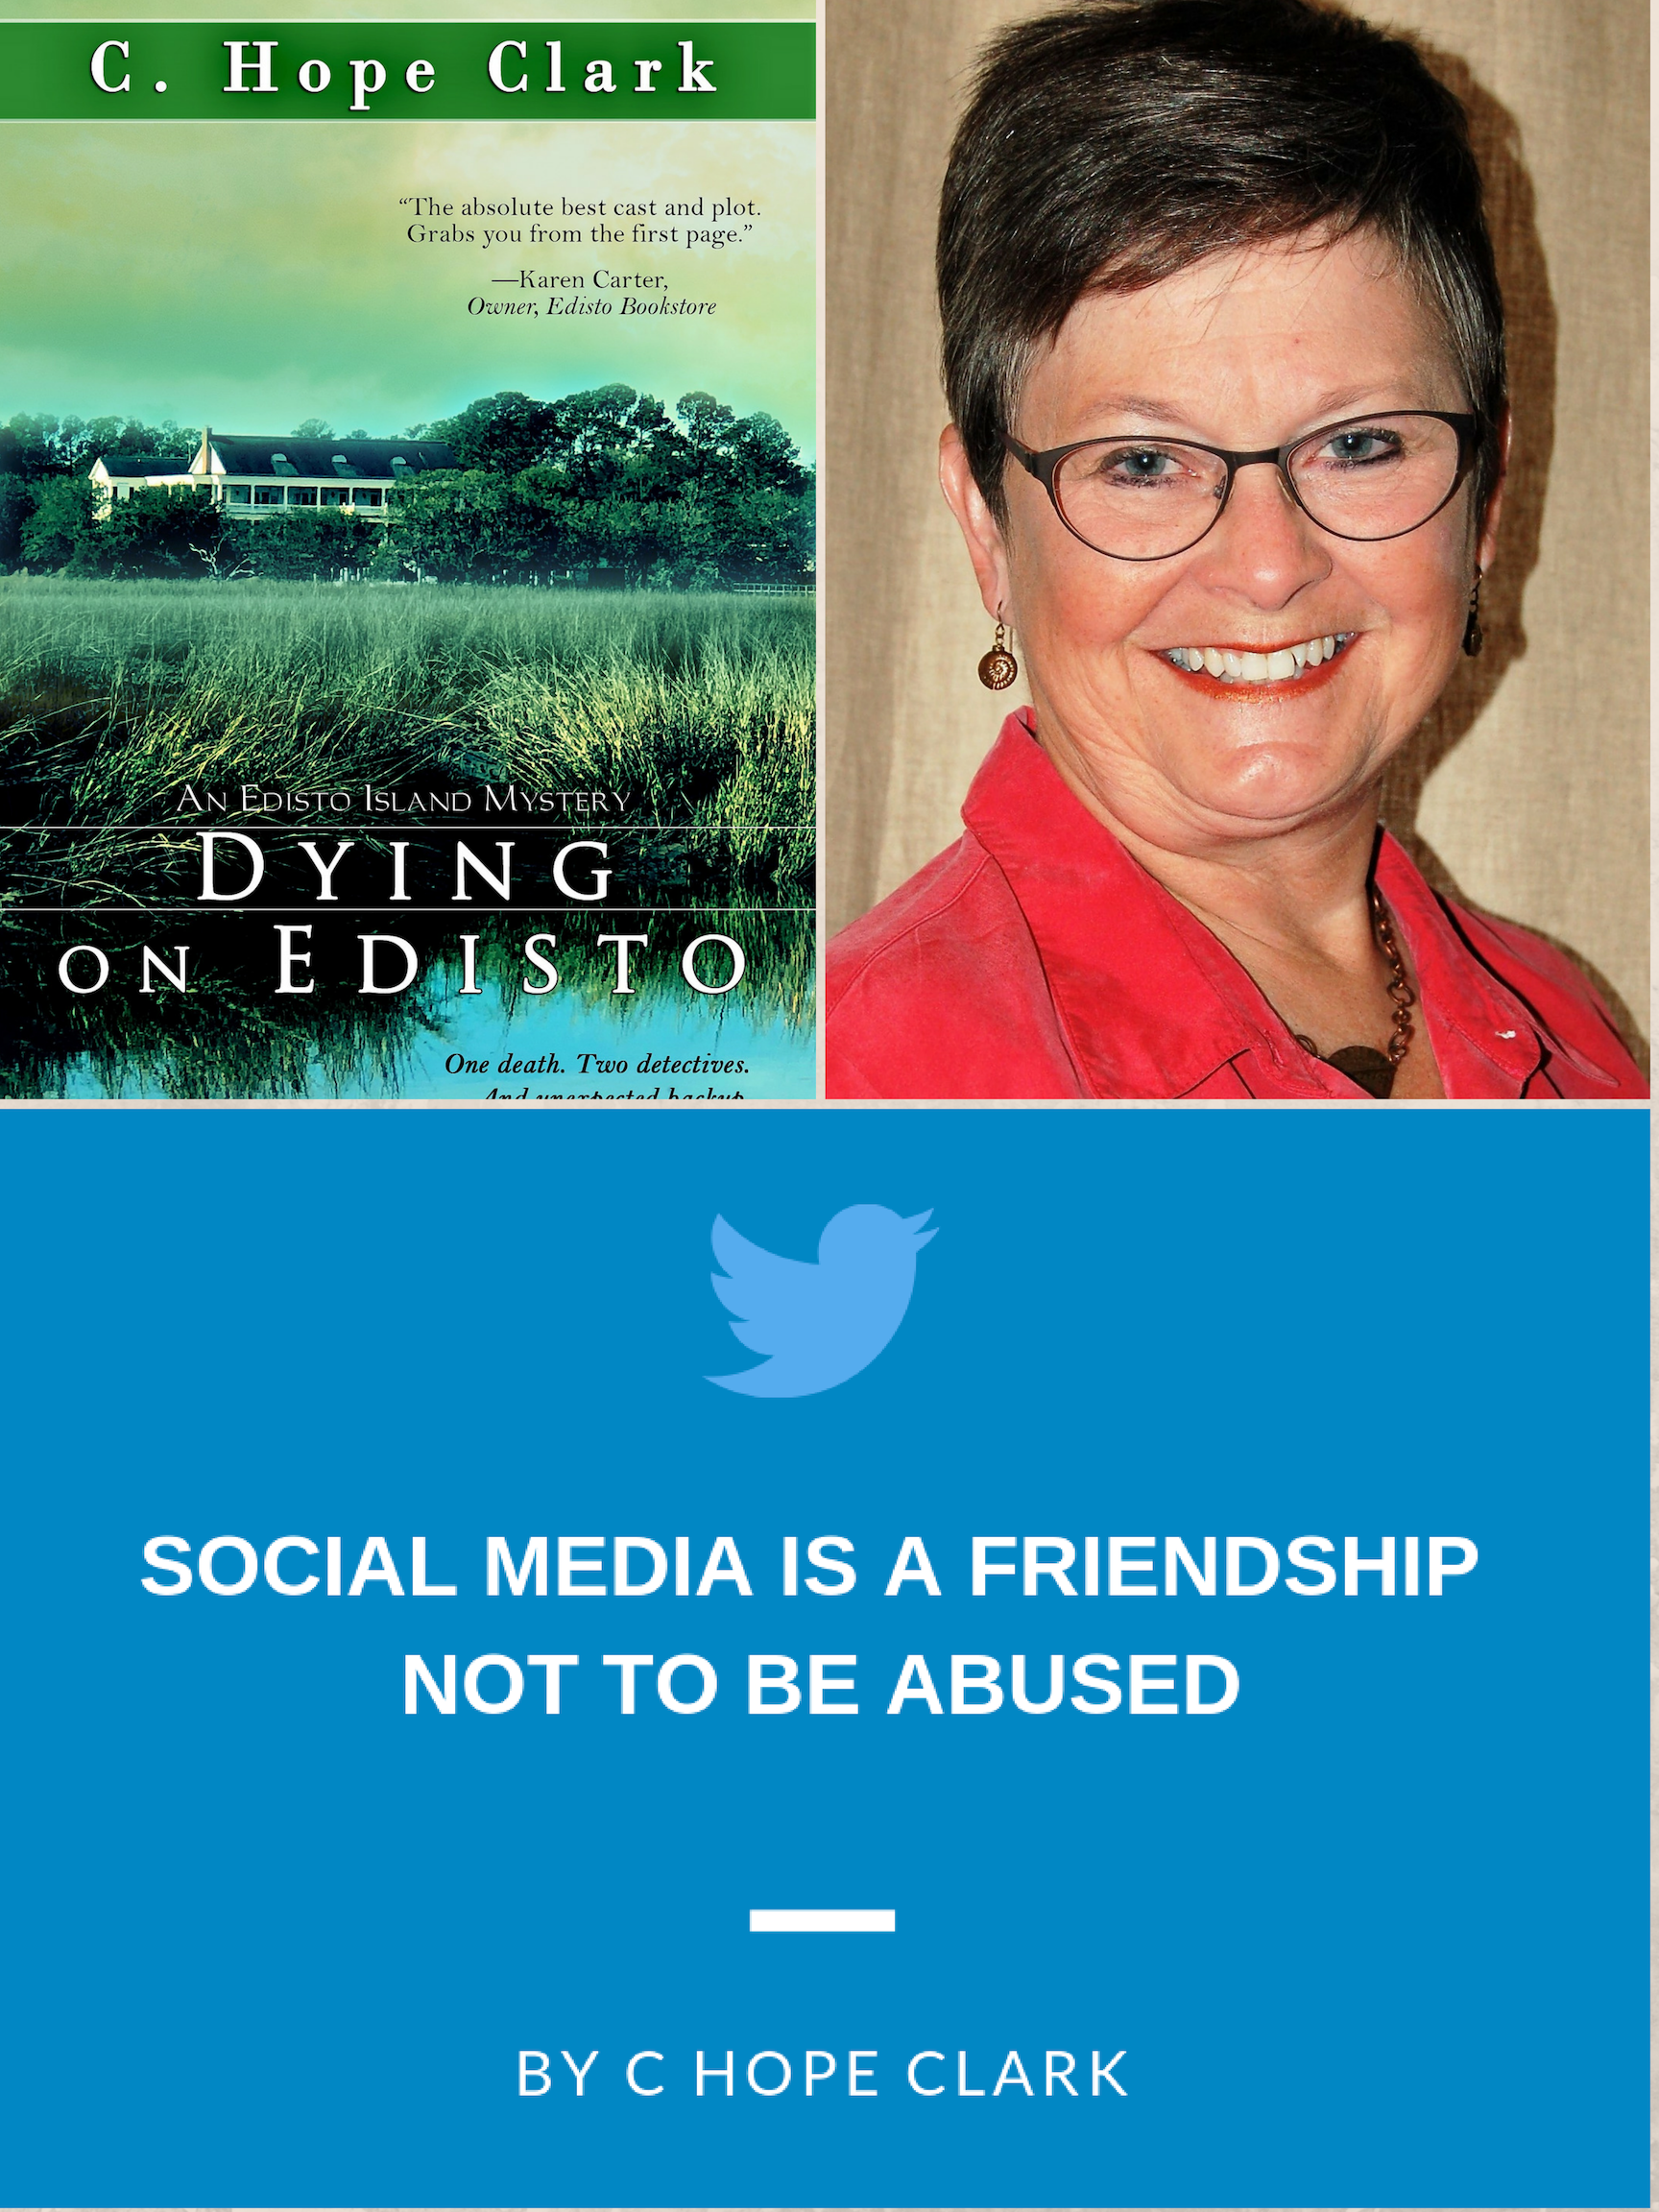 Social Media is a Friendship Not to be Abused By C. Hope Clark